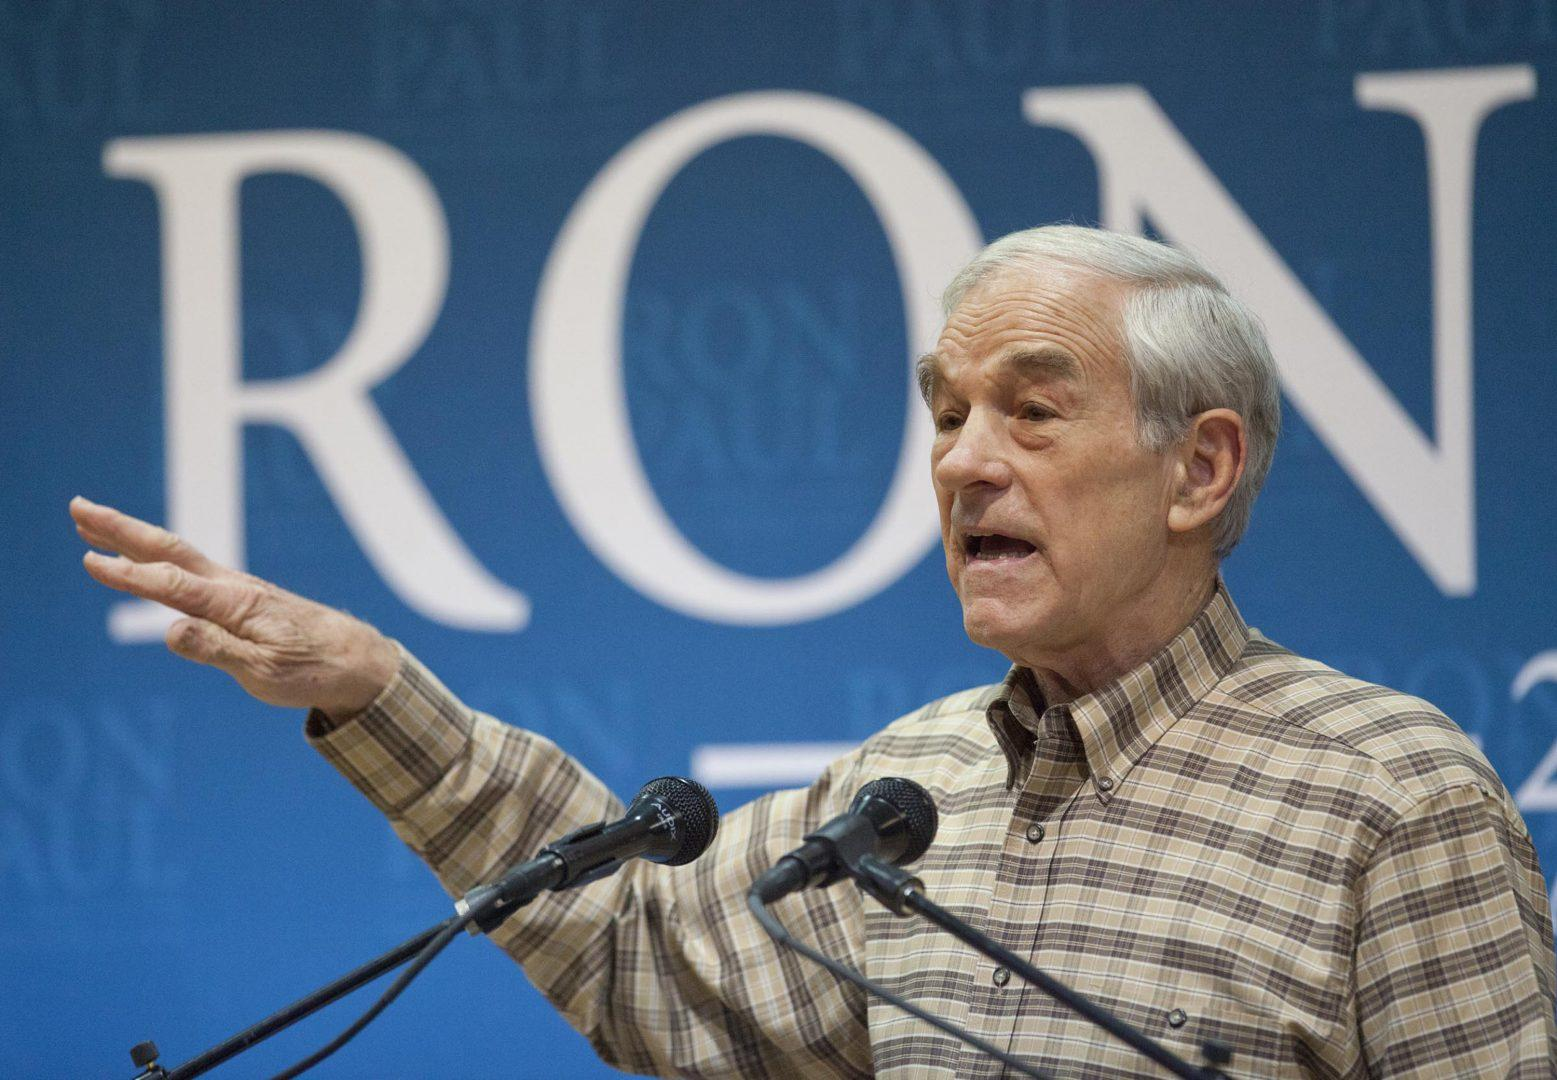 Ron Paul: A Dangerously Appealing Renegade to Students